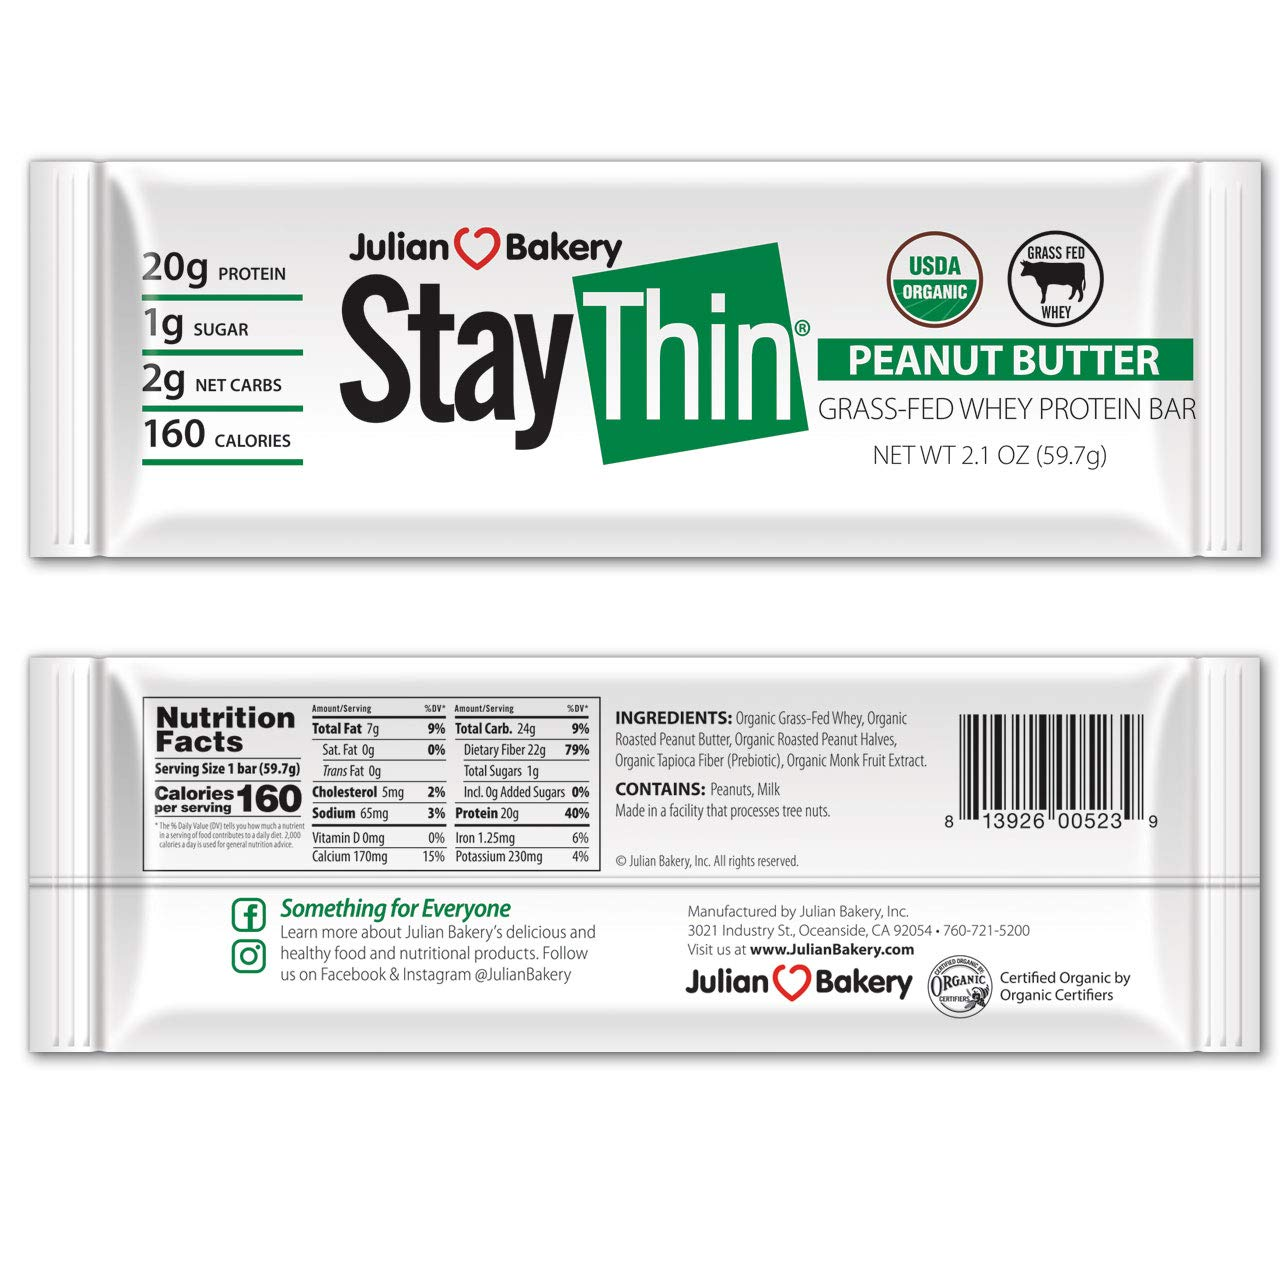 Stay Thin® Protein Bar (Certified Organic) (160 Cal) (20g Grass-Fed Whey Protein) (2 Net Carbs)(4 Ingredients)(1g Sugar)(12 Gluten-Free Bars) by Julian Bakery